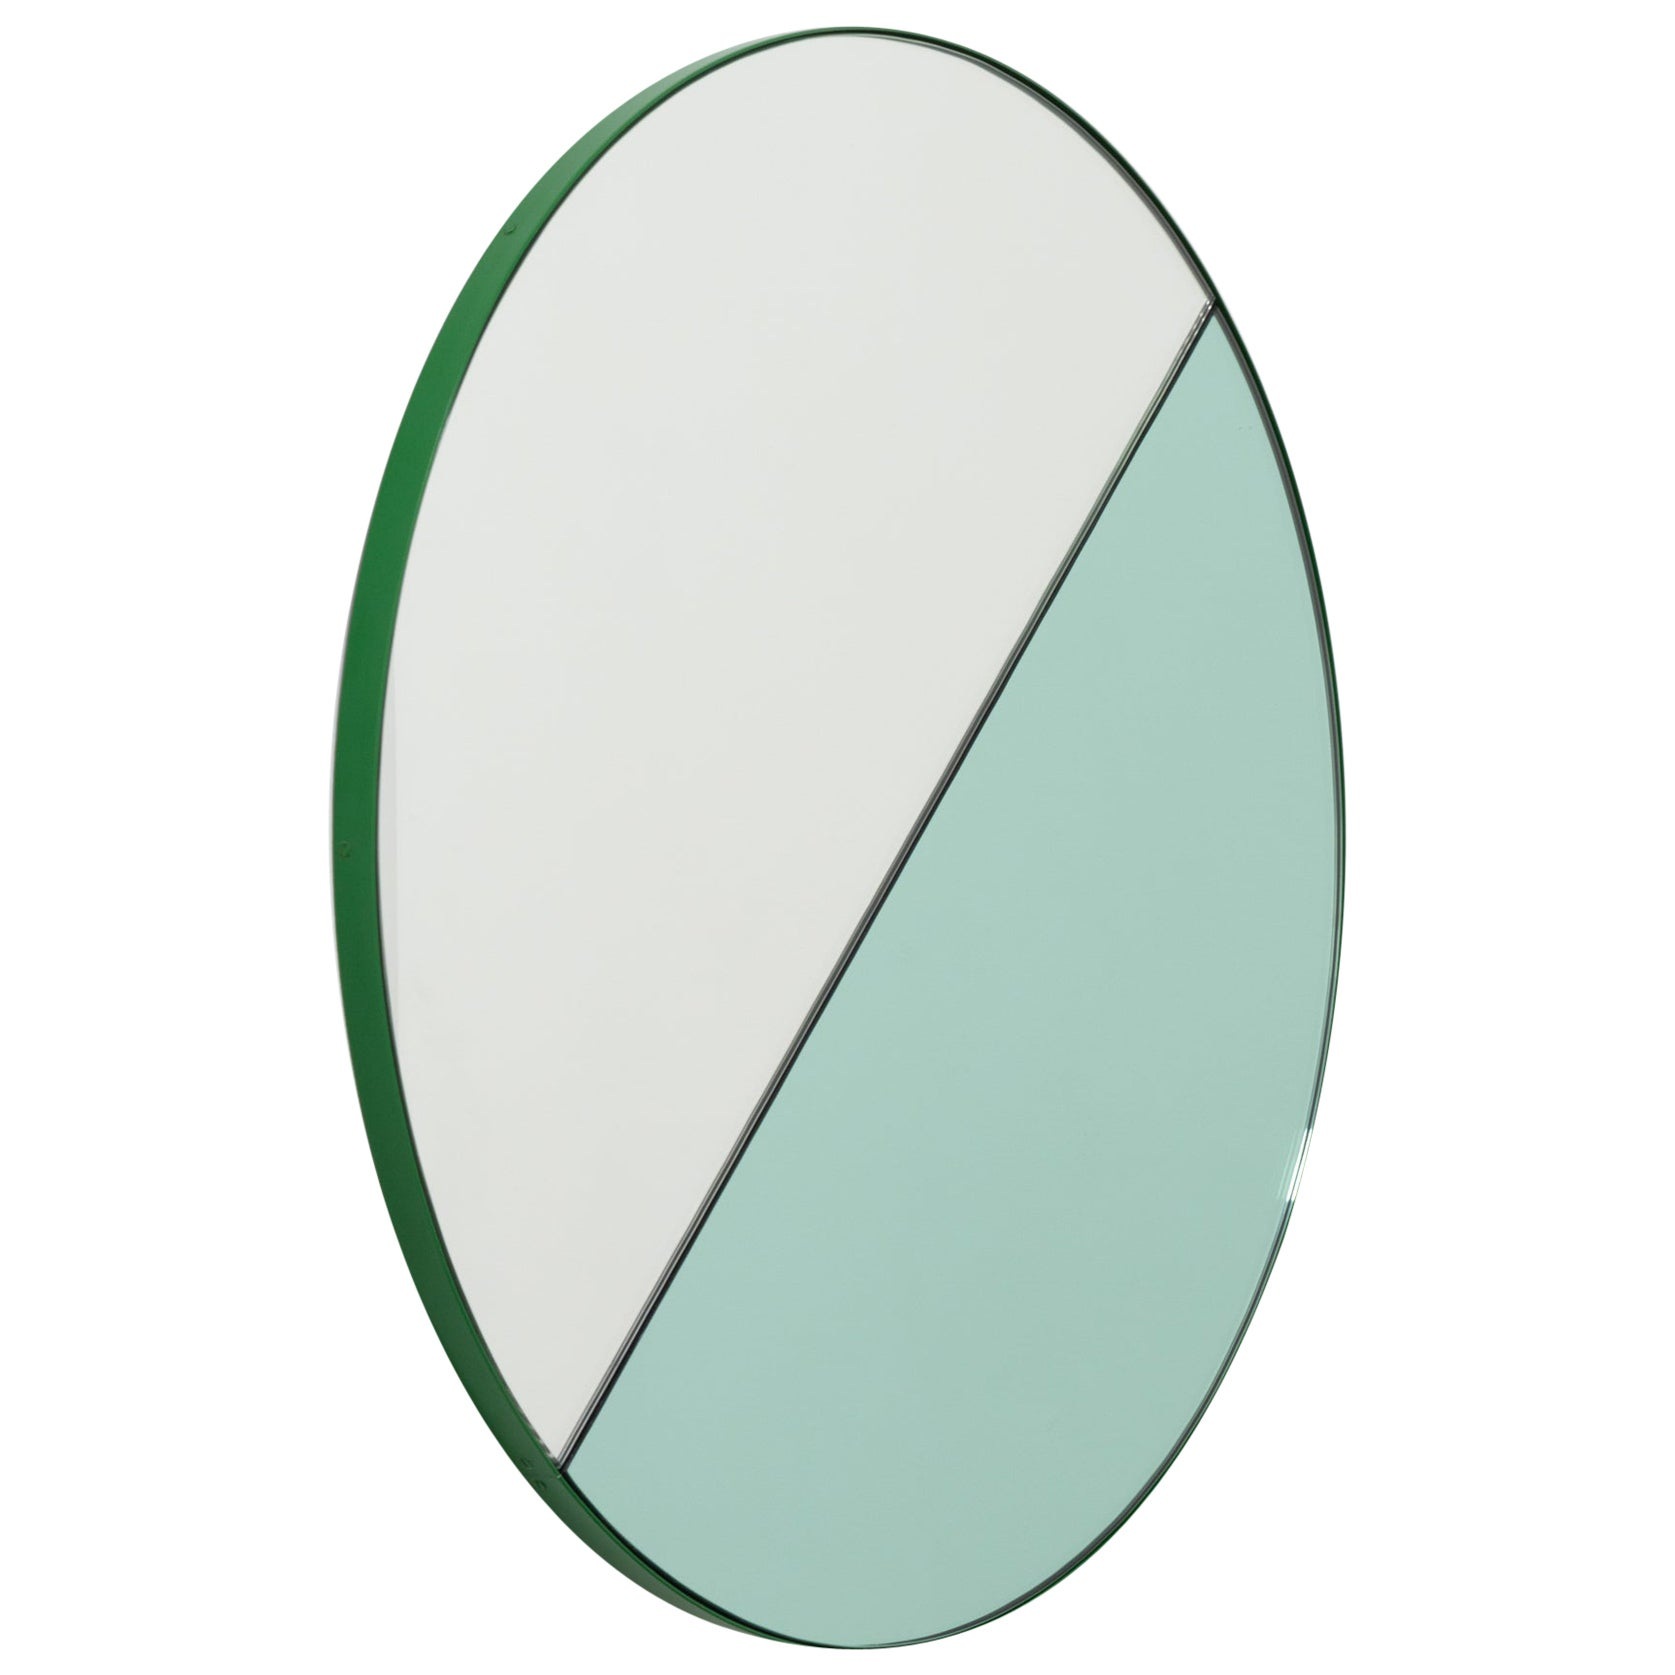 Orbis Dualis Mixed 'Green + Silver' Round Mirror with Green Frame, Small